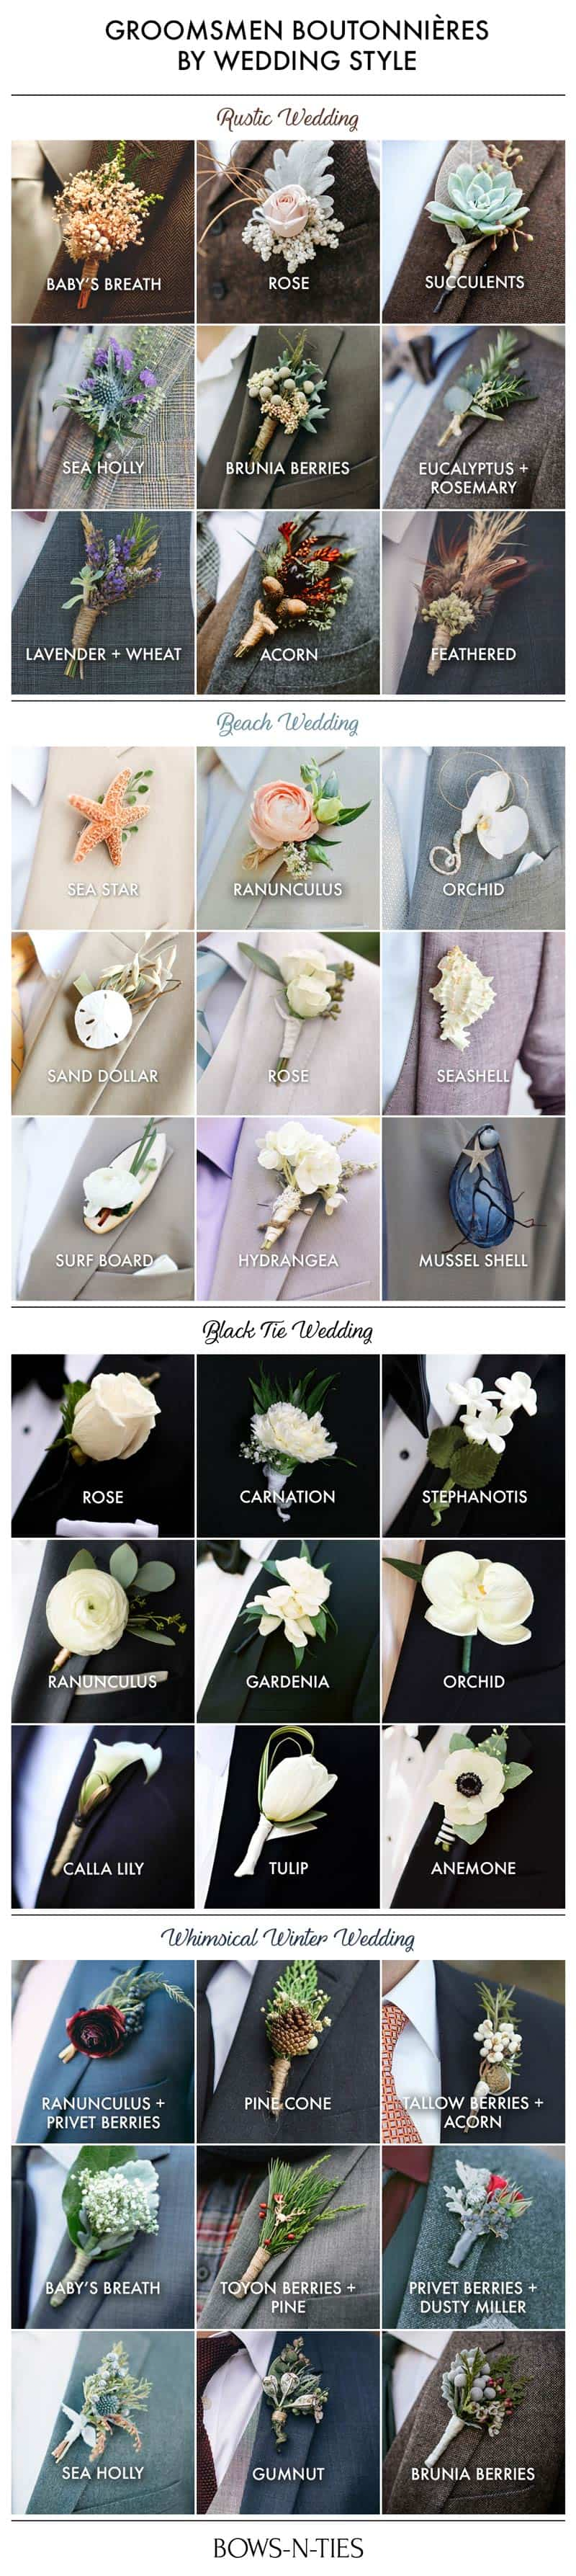 Boutonnieres_By_WeddingStyle